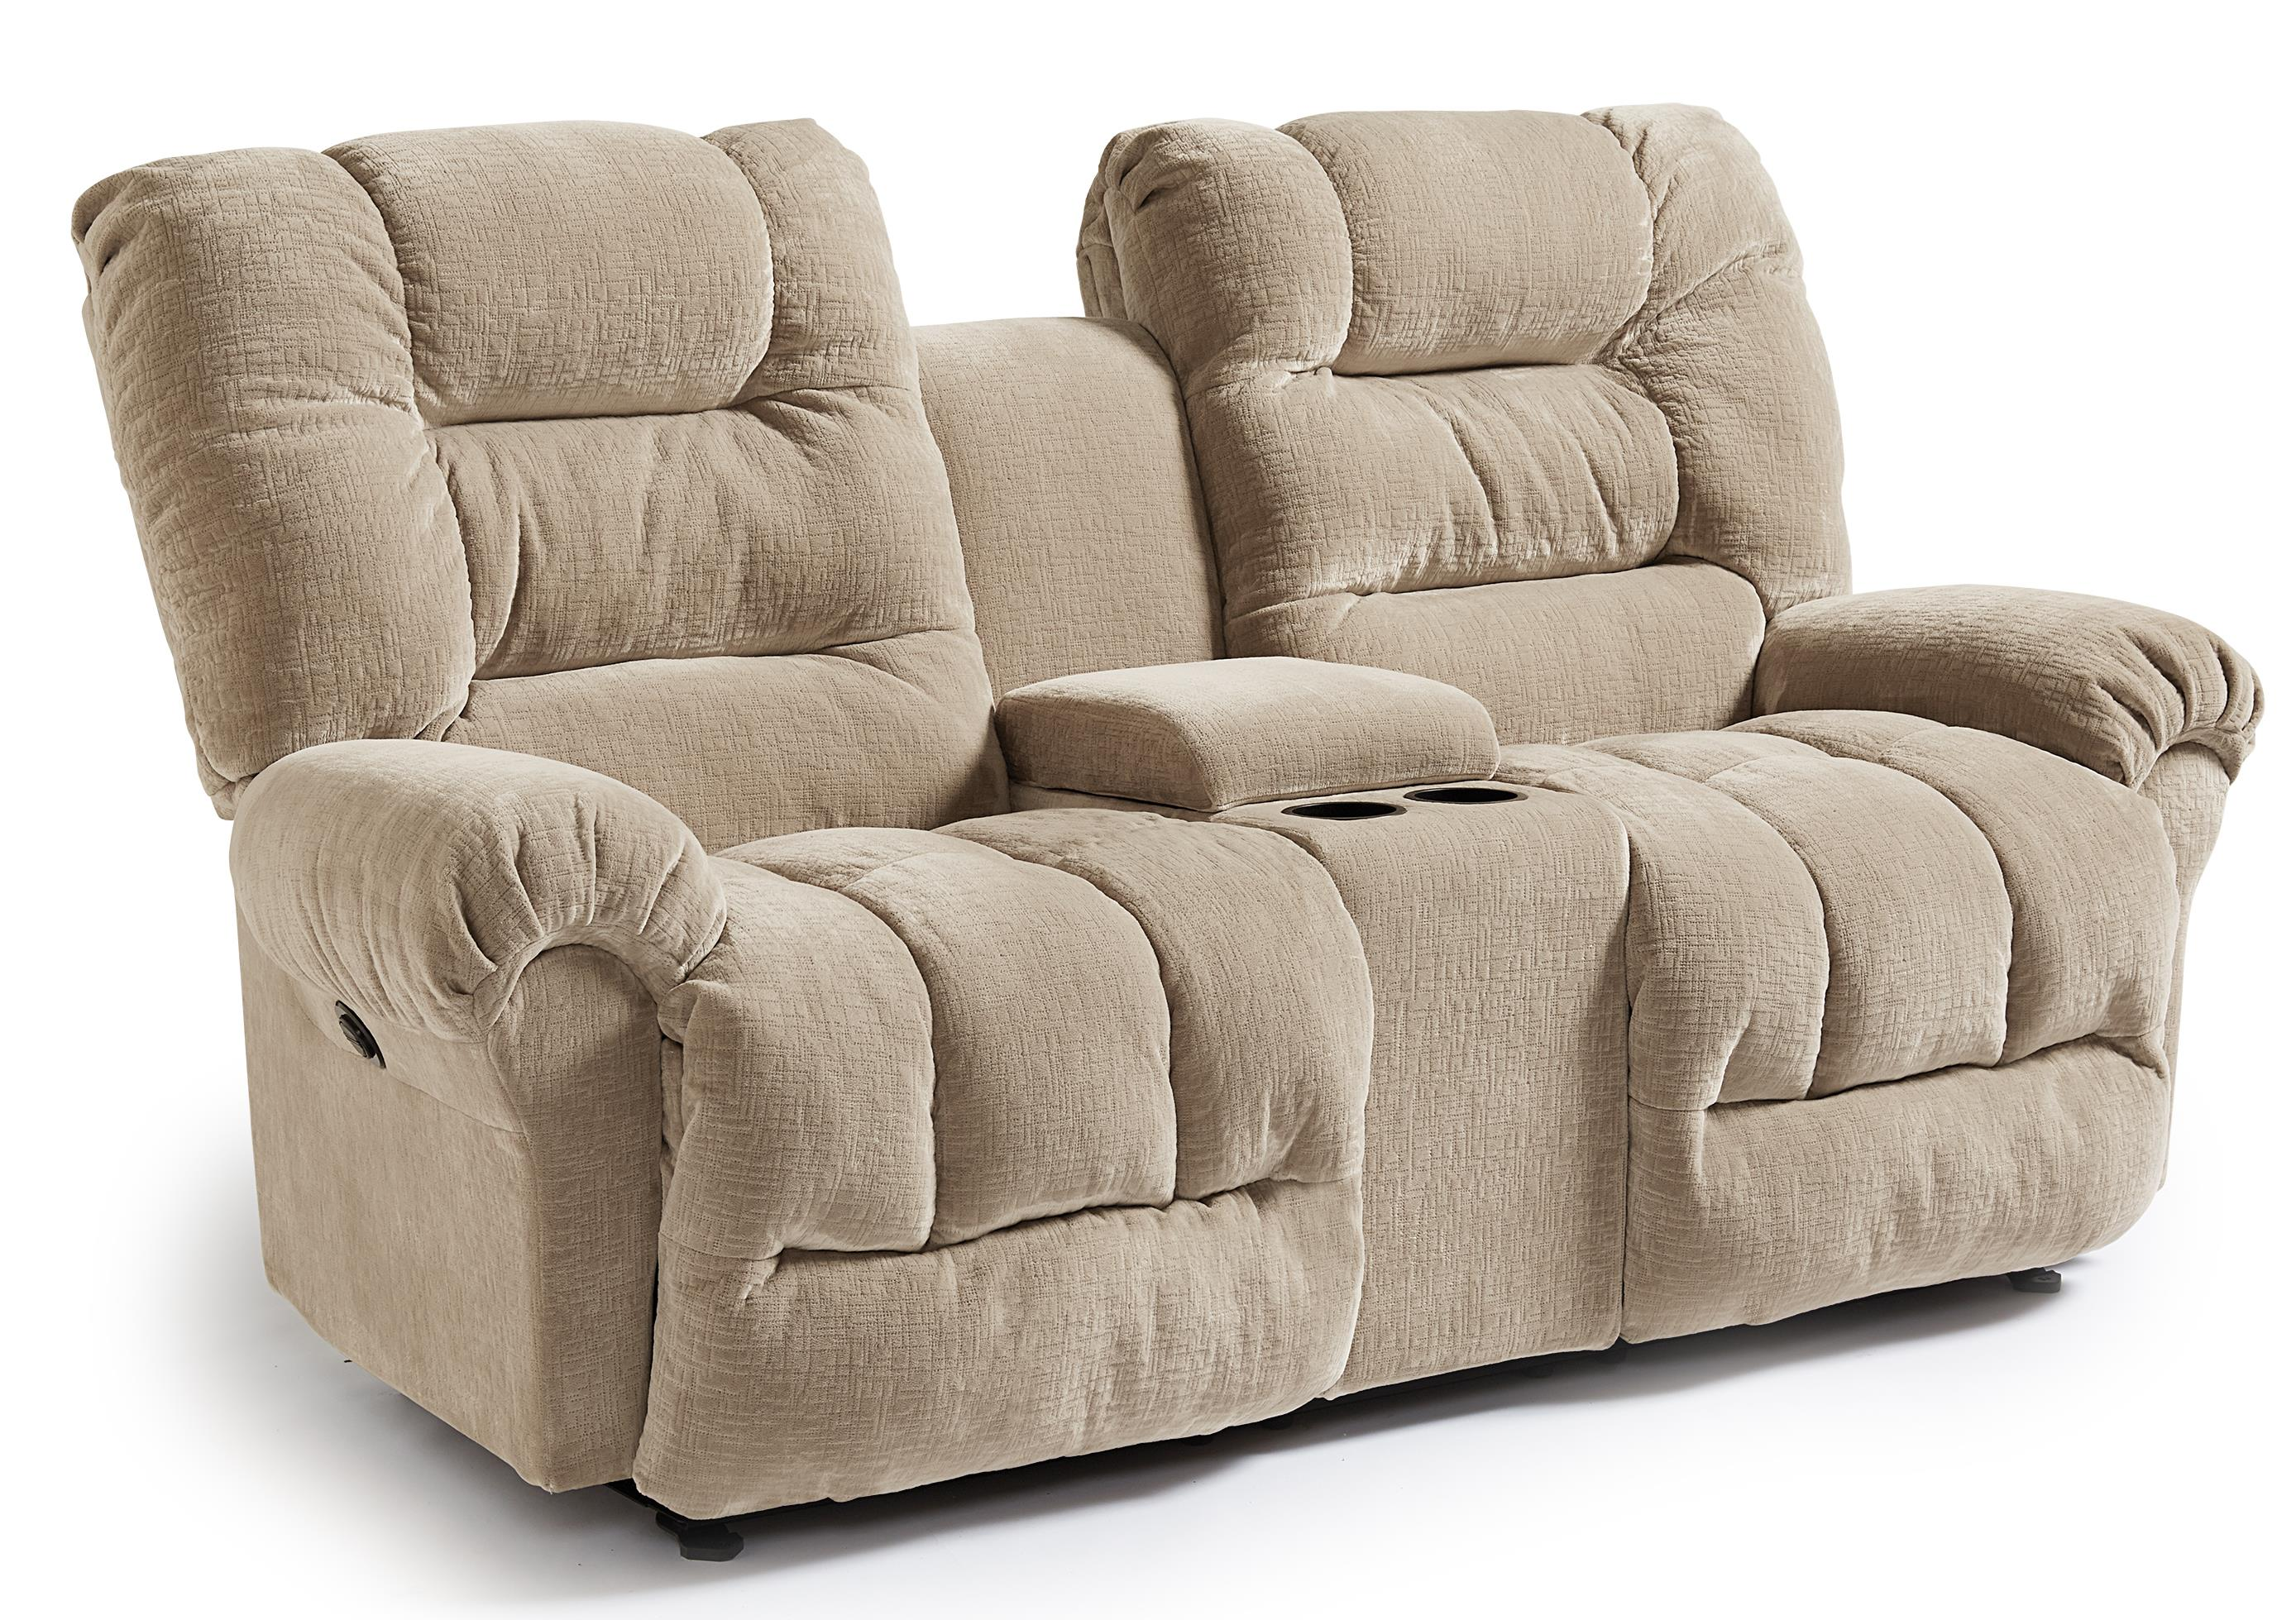 Casual power rocking reclining loveseat with cupholder console by best home furnishings wolf Rocking loveseats